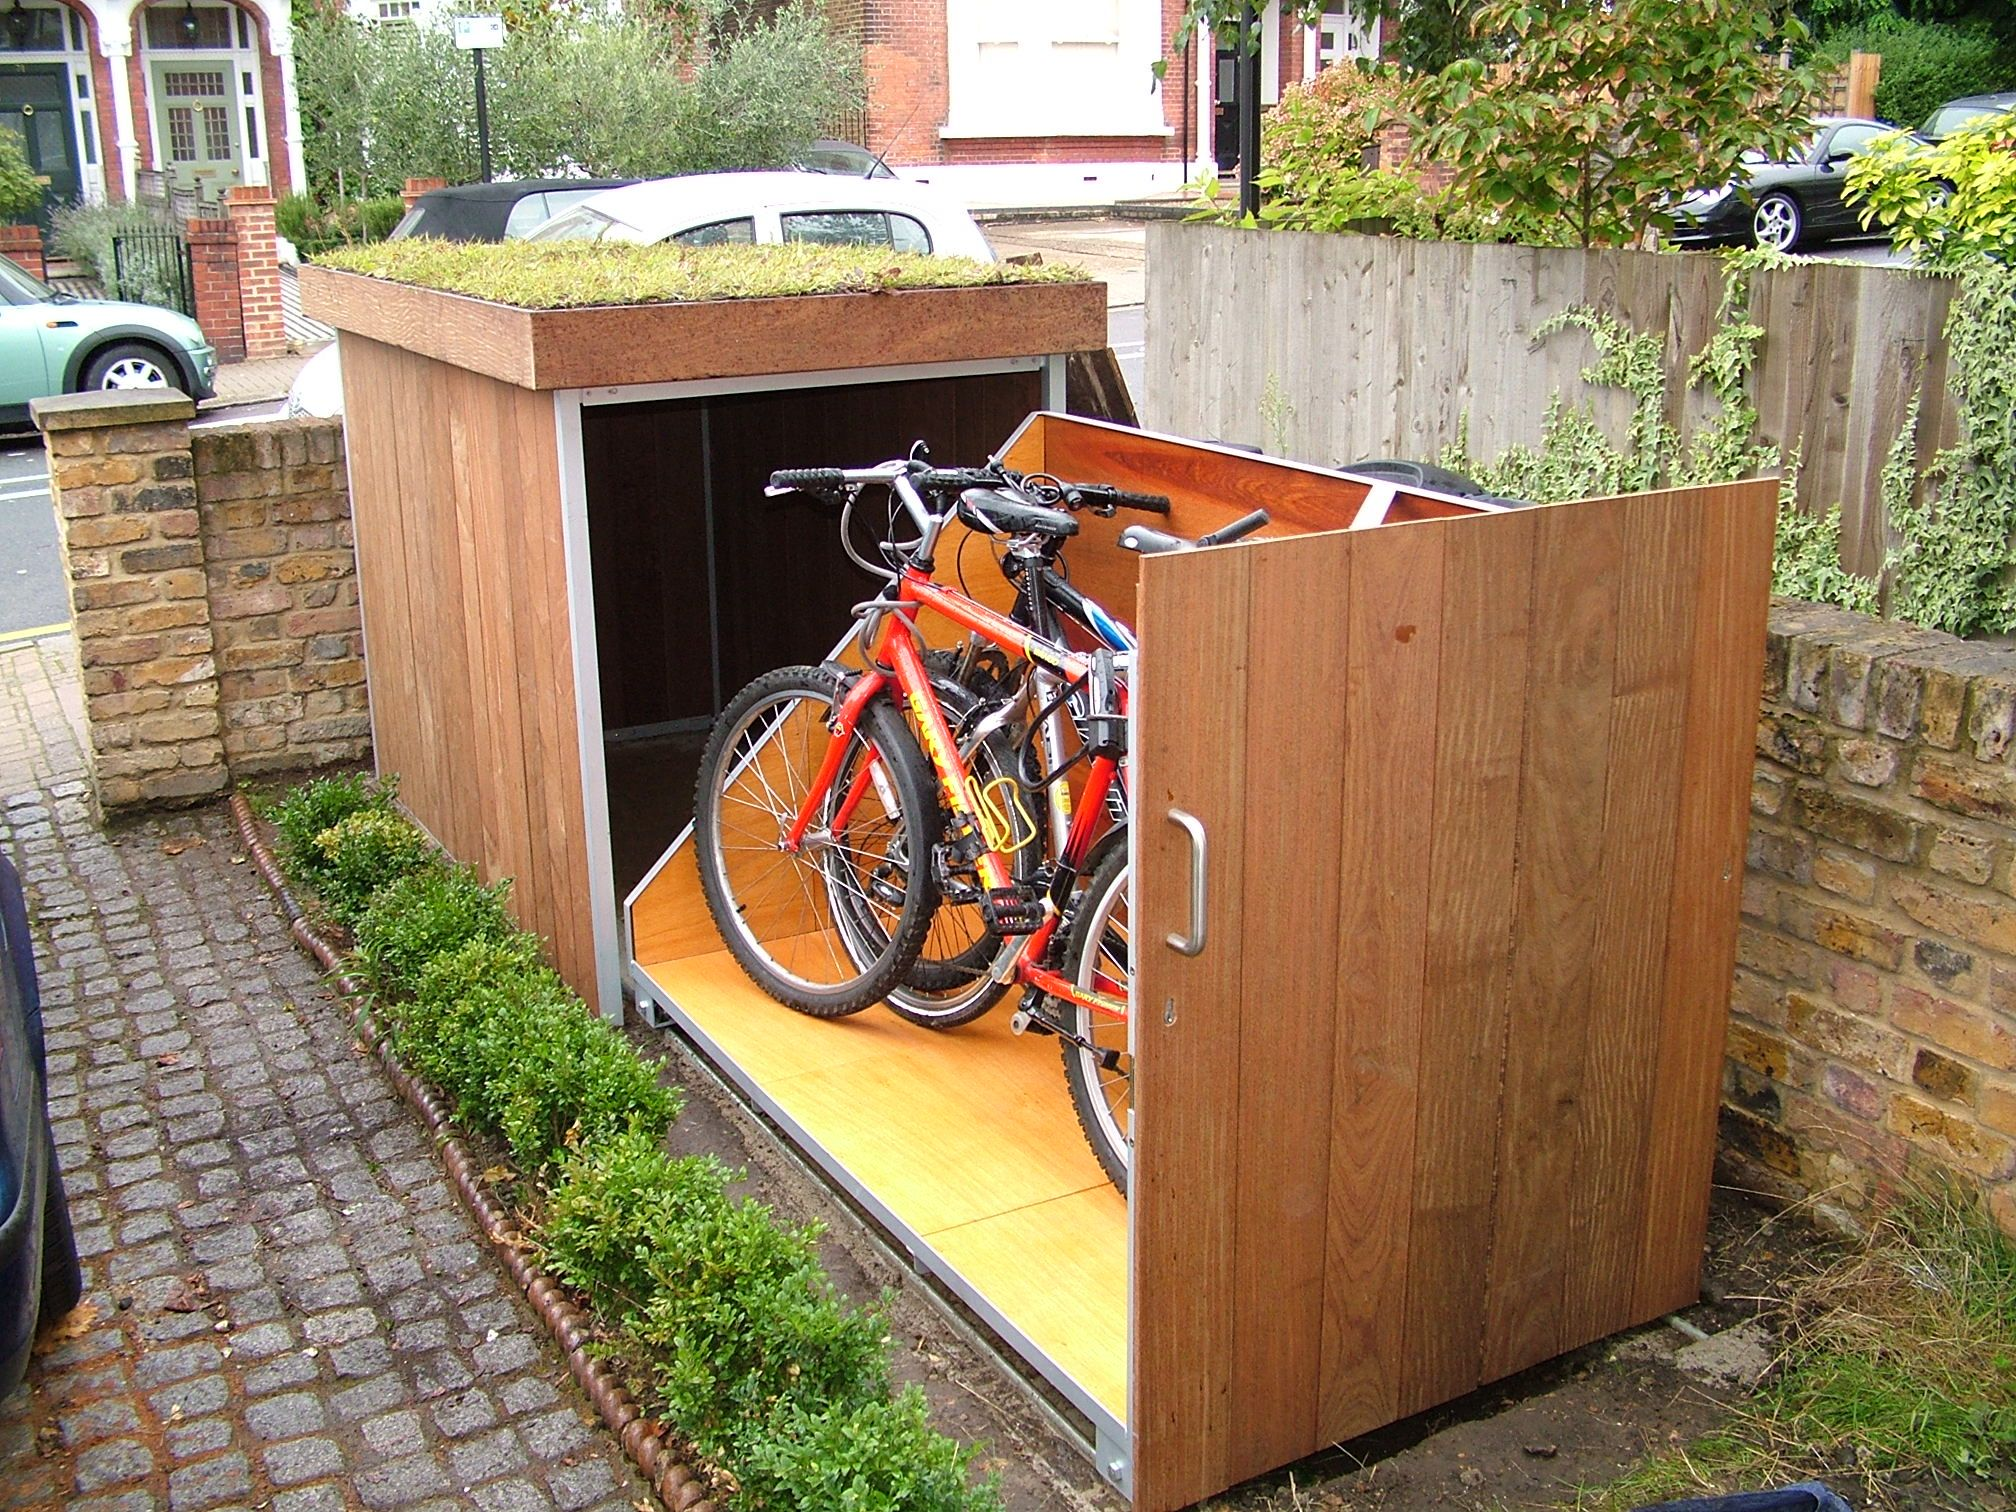 Bike Storage Backyard Storage Outdoor Bike Storage Bike Storage